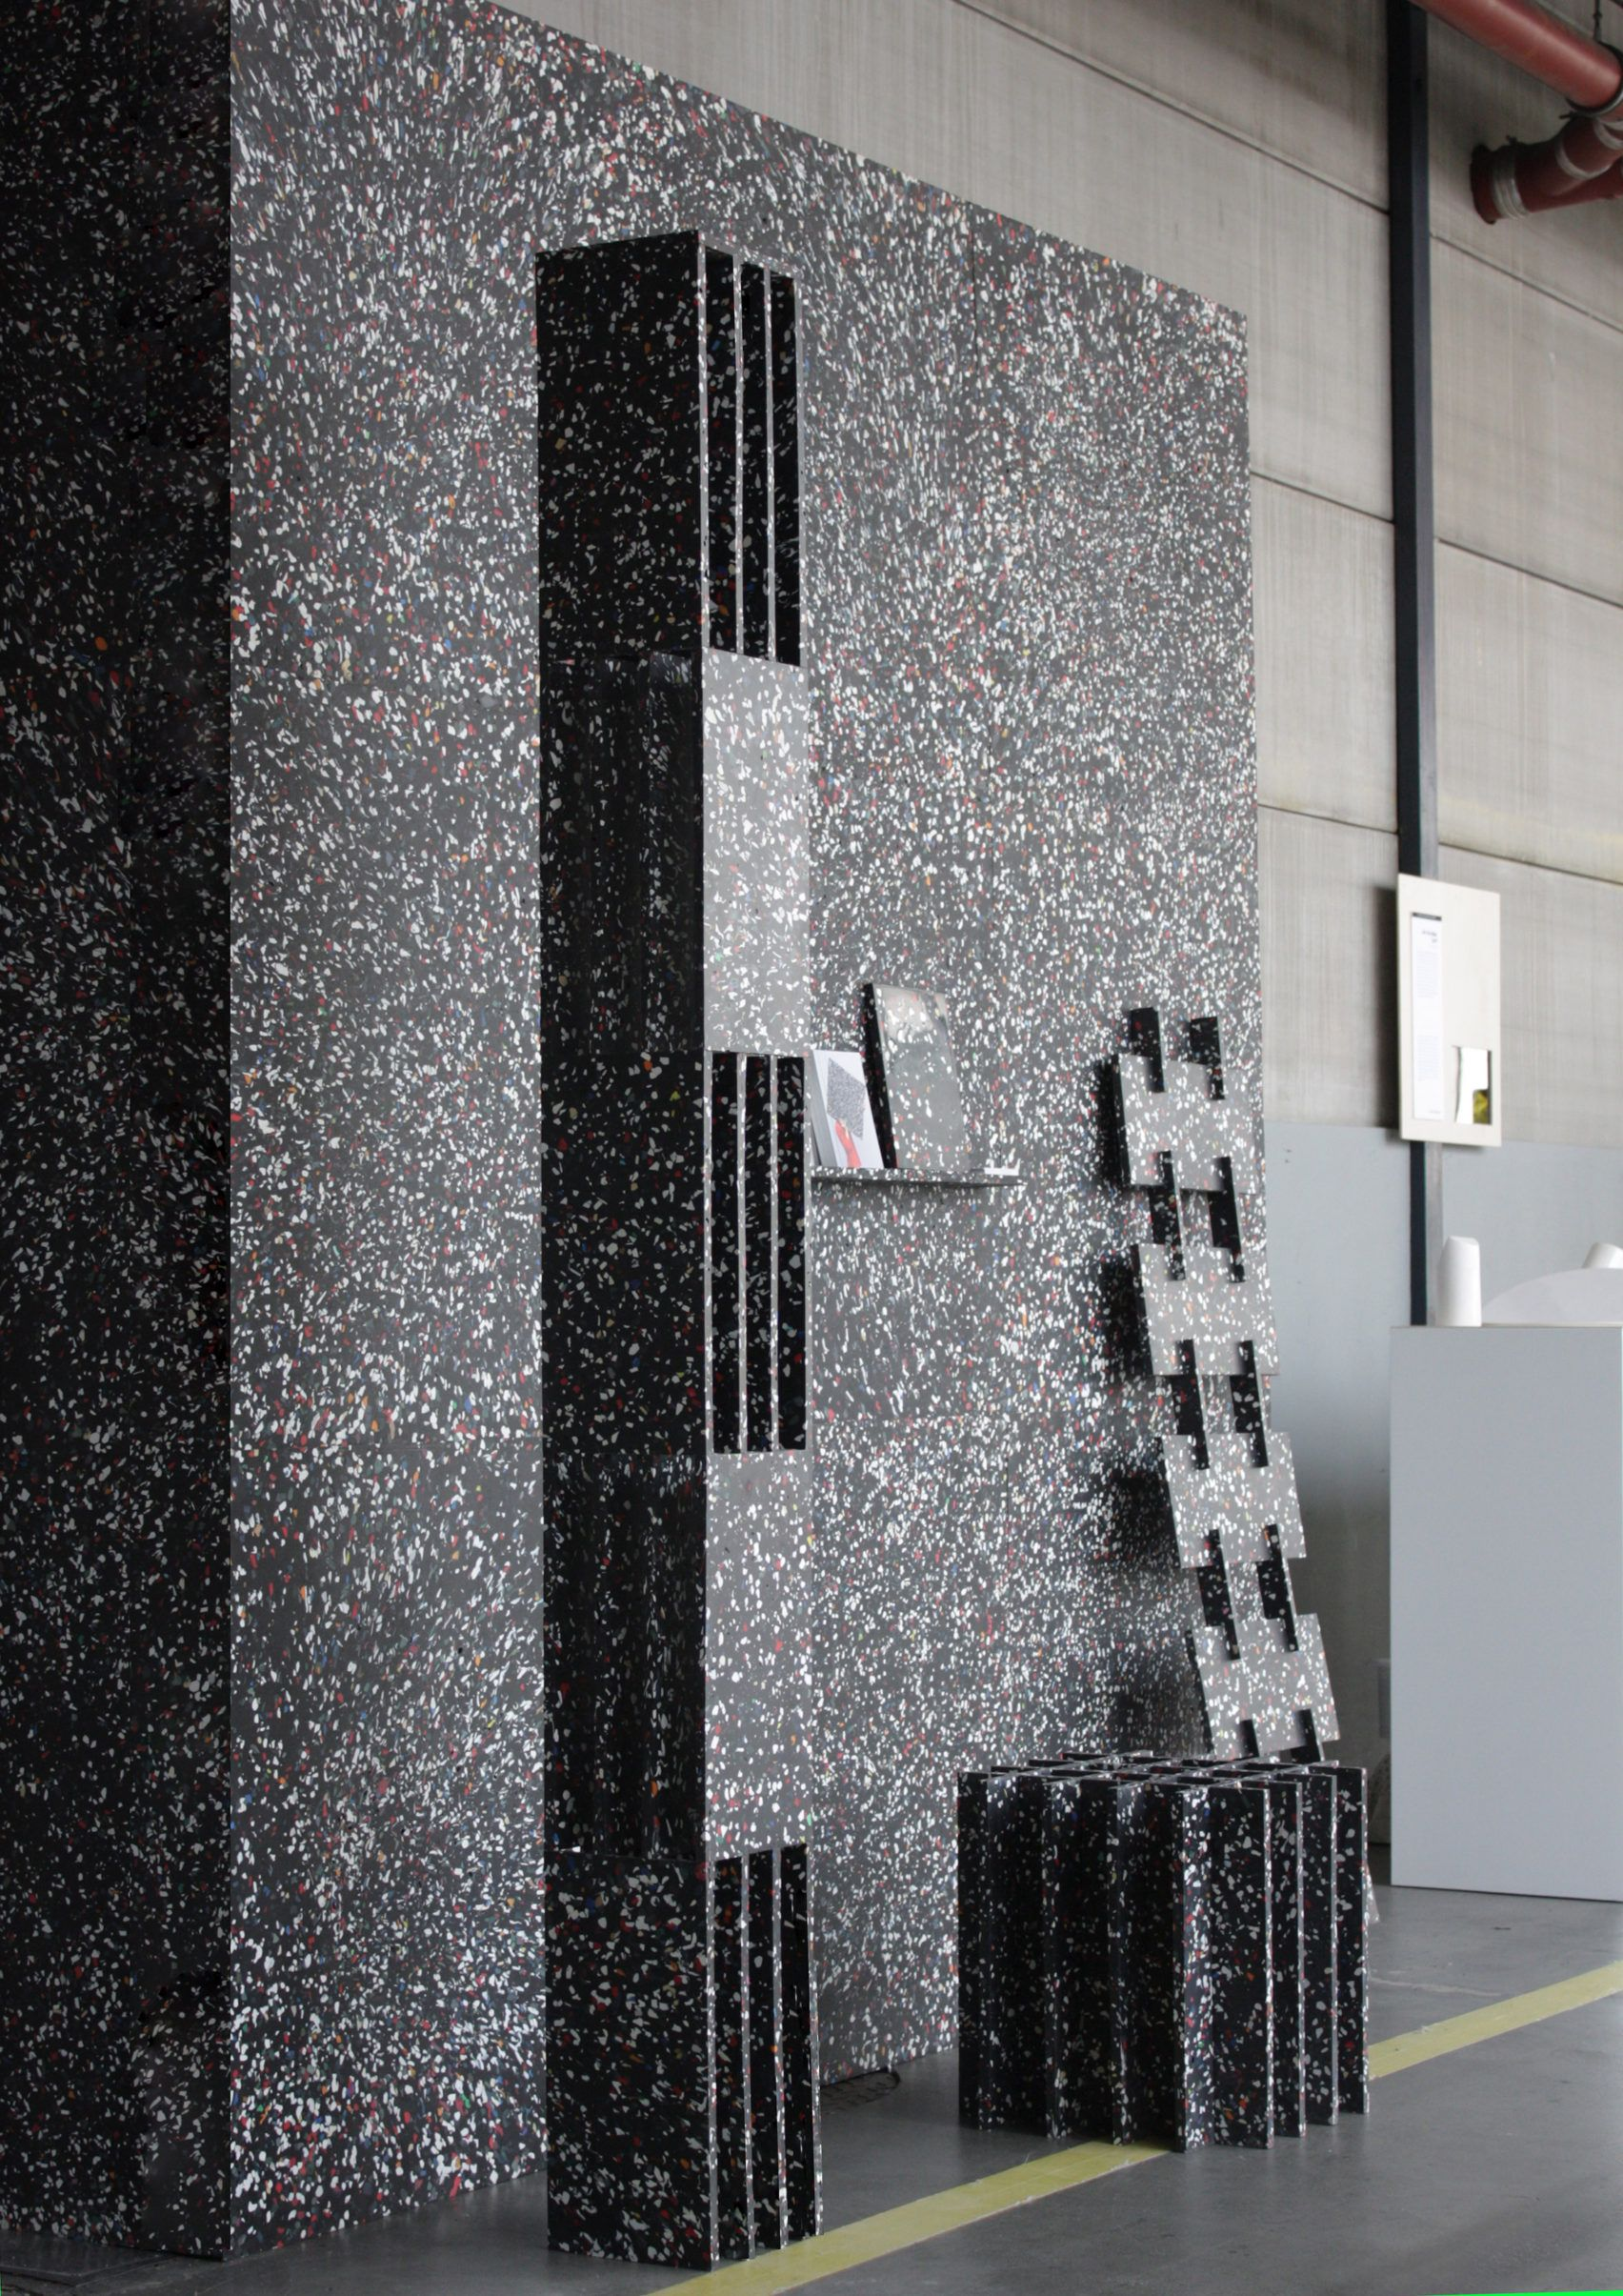 91fbe903f31b Plasticiet produces terrazzo-like material from recycled plastic ...